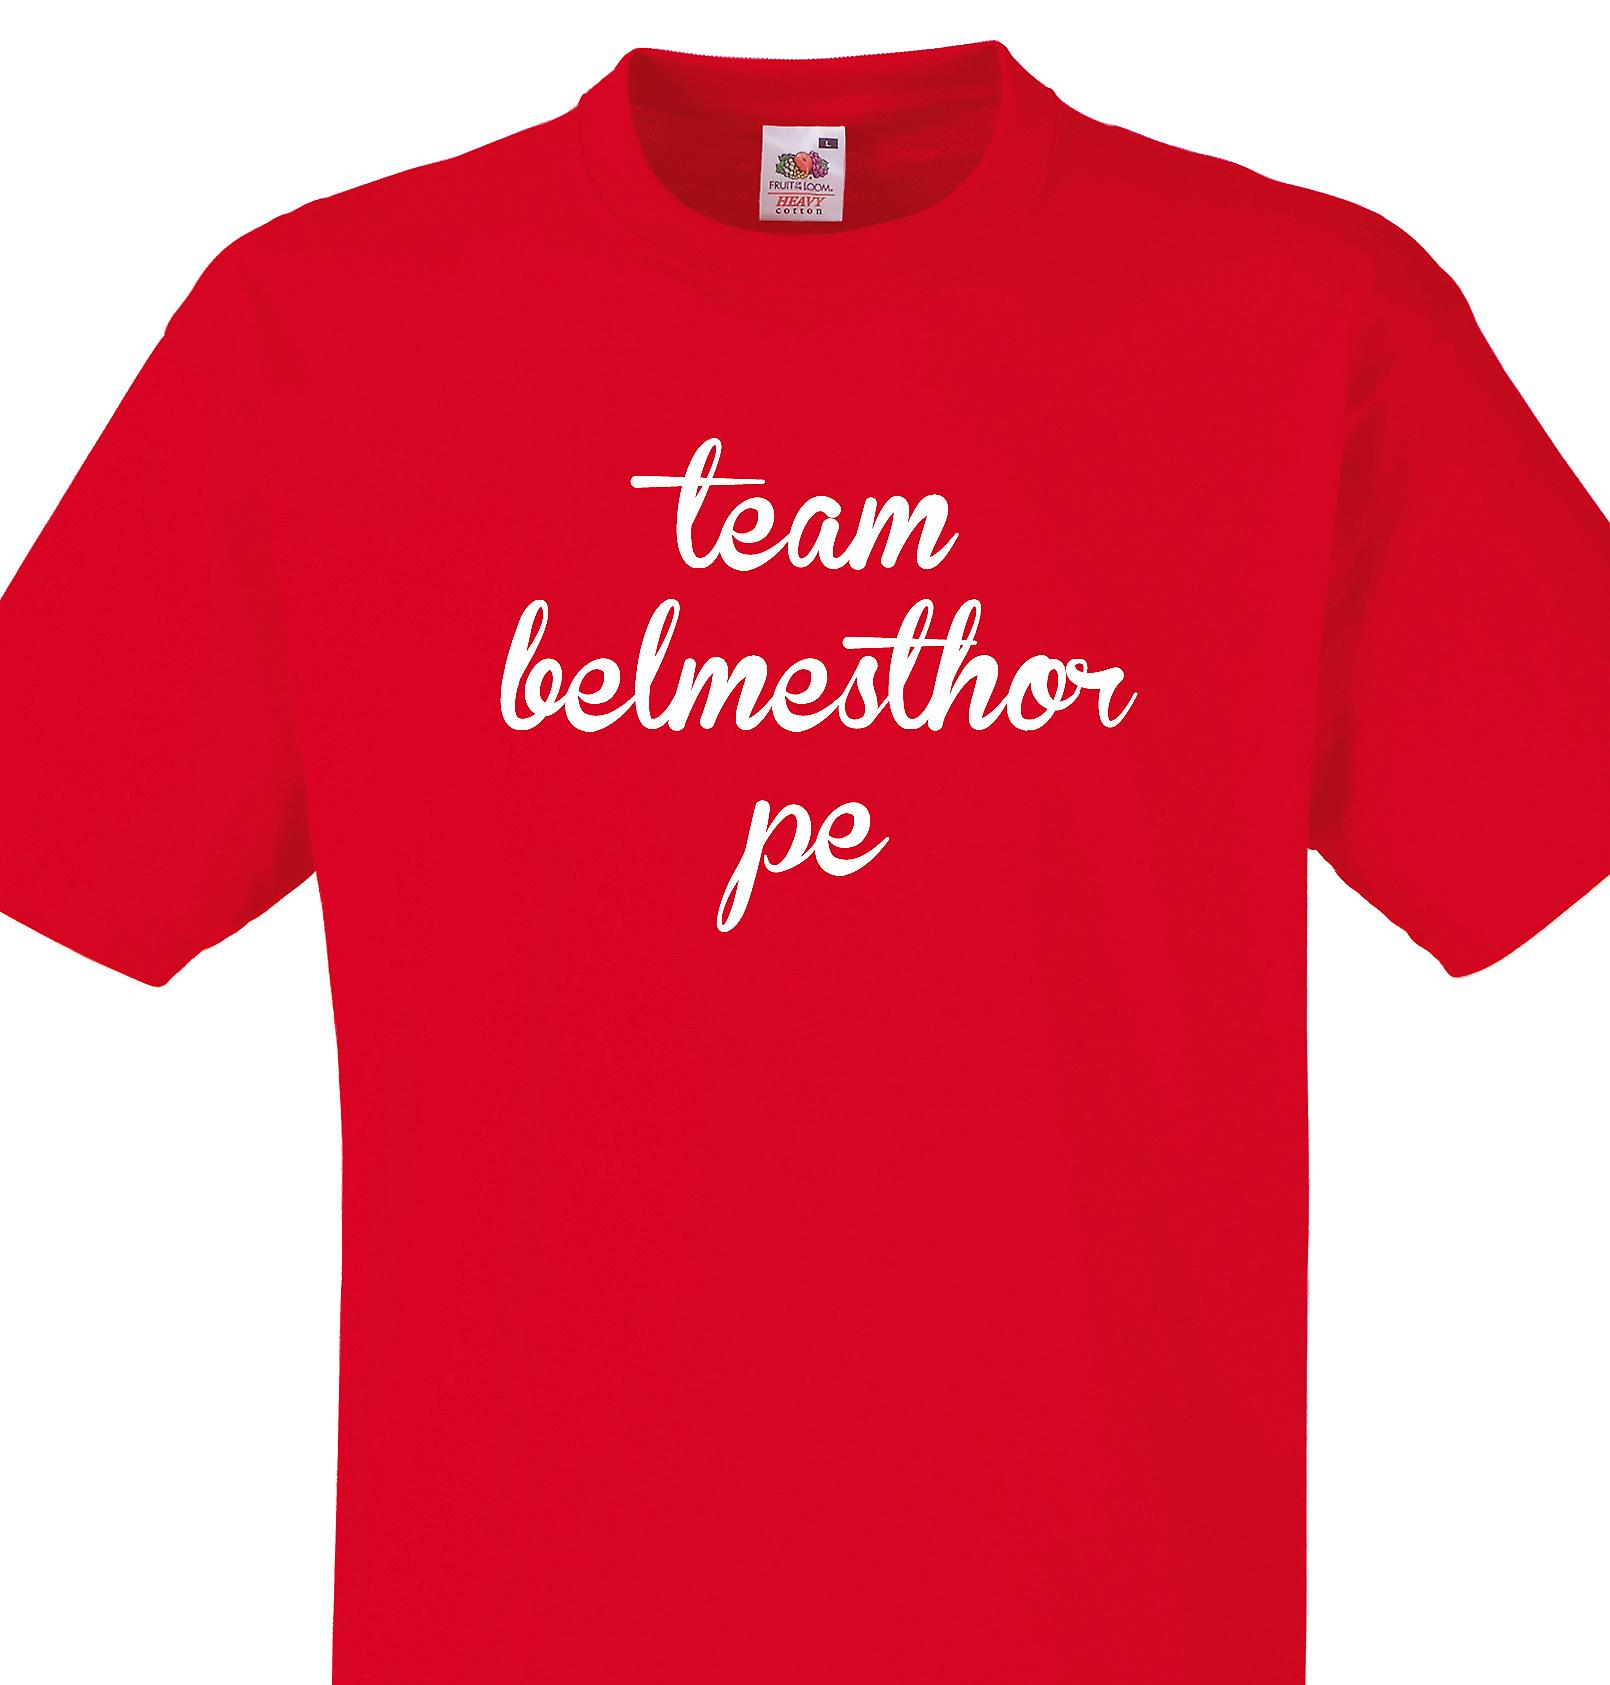 Team Belmesthorpe Red T shirt